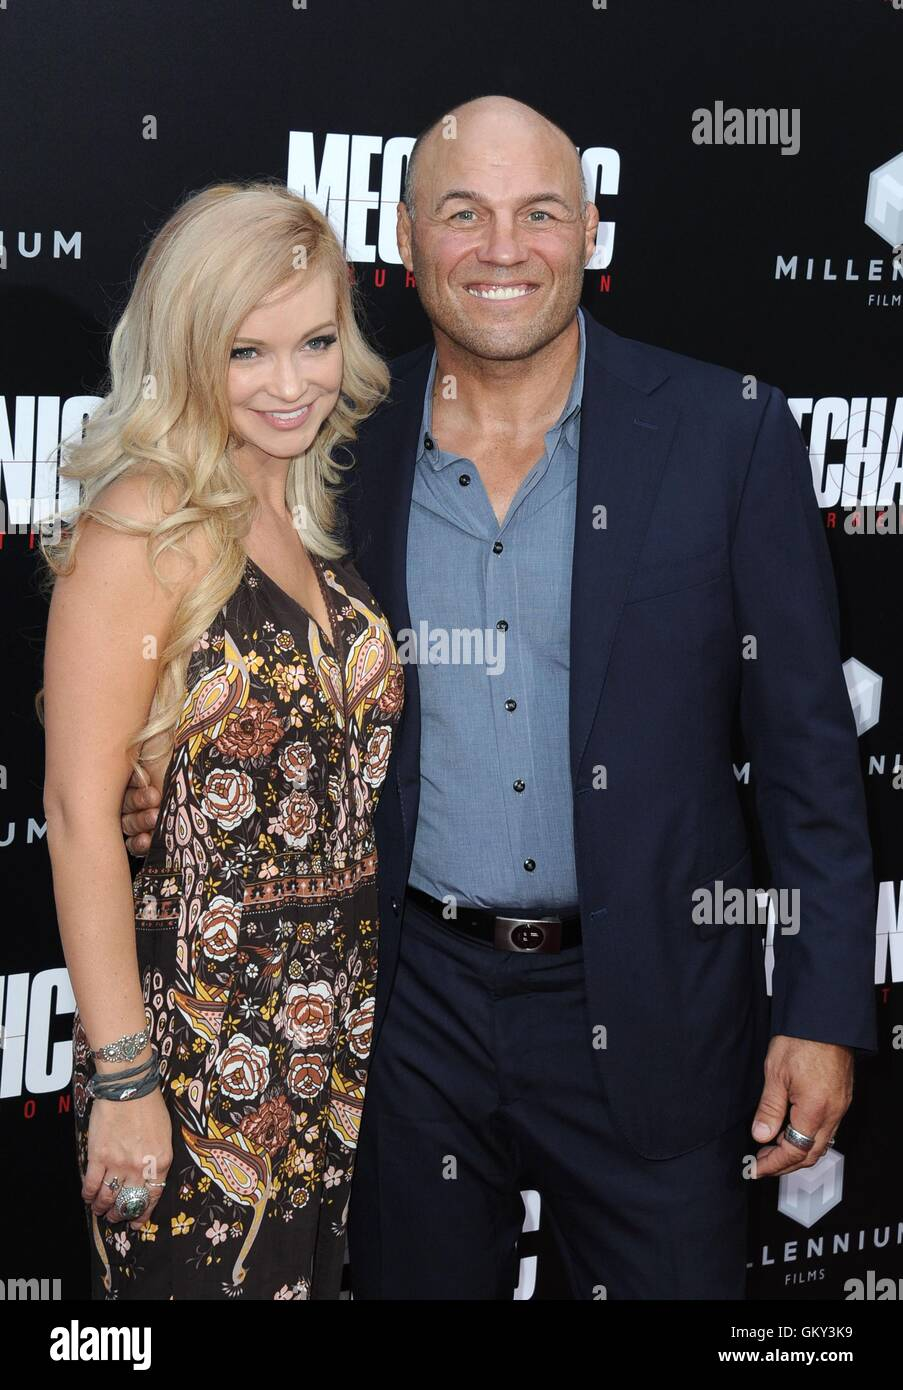 Hollywood, CA. 22nd Aug, 2016. Randy Couture, Mindy Robinson at arrivals for MECHANIC: RESURRECTION Premiere, Arclight Stock Photo